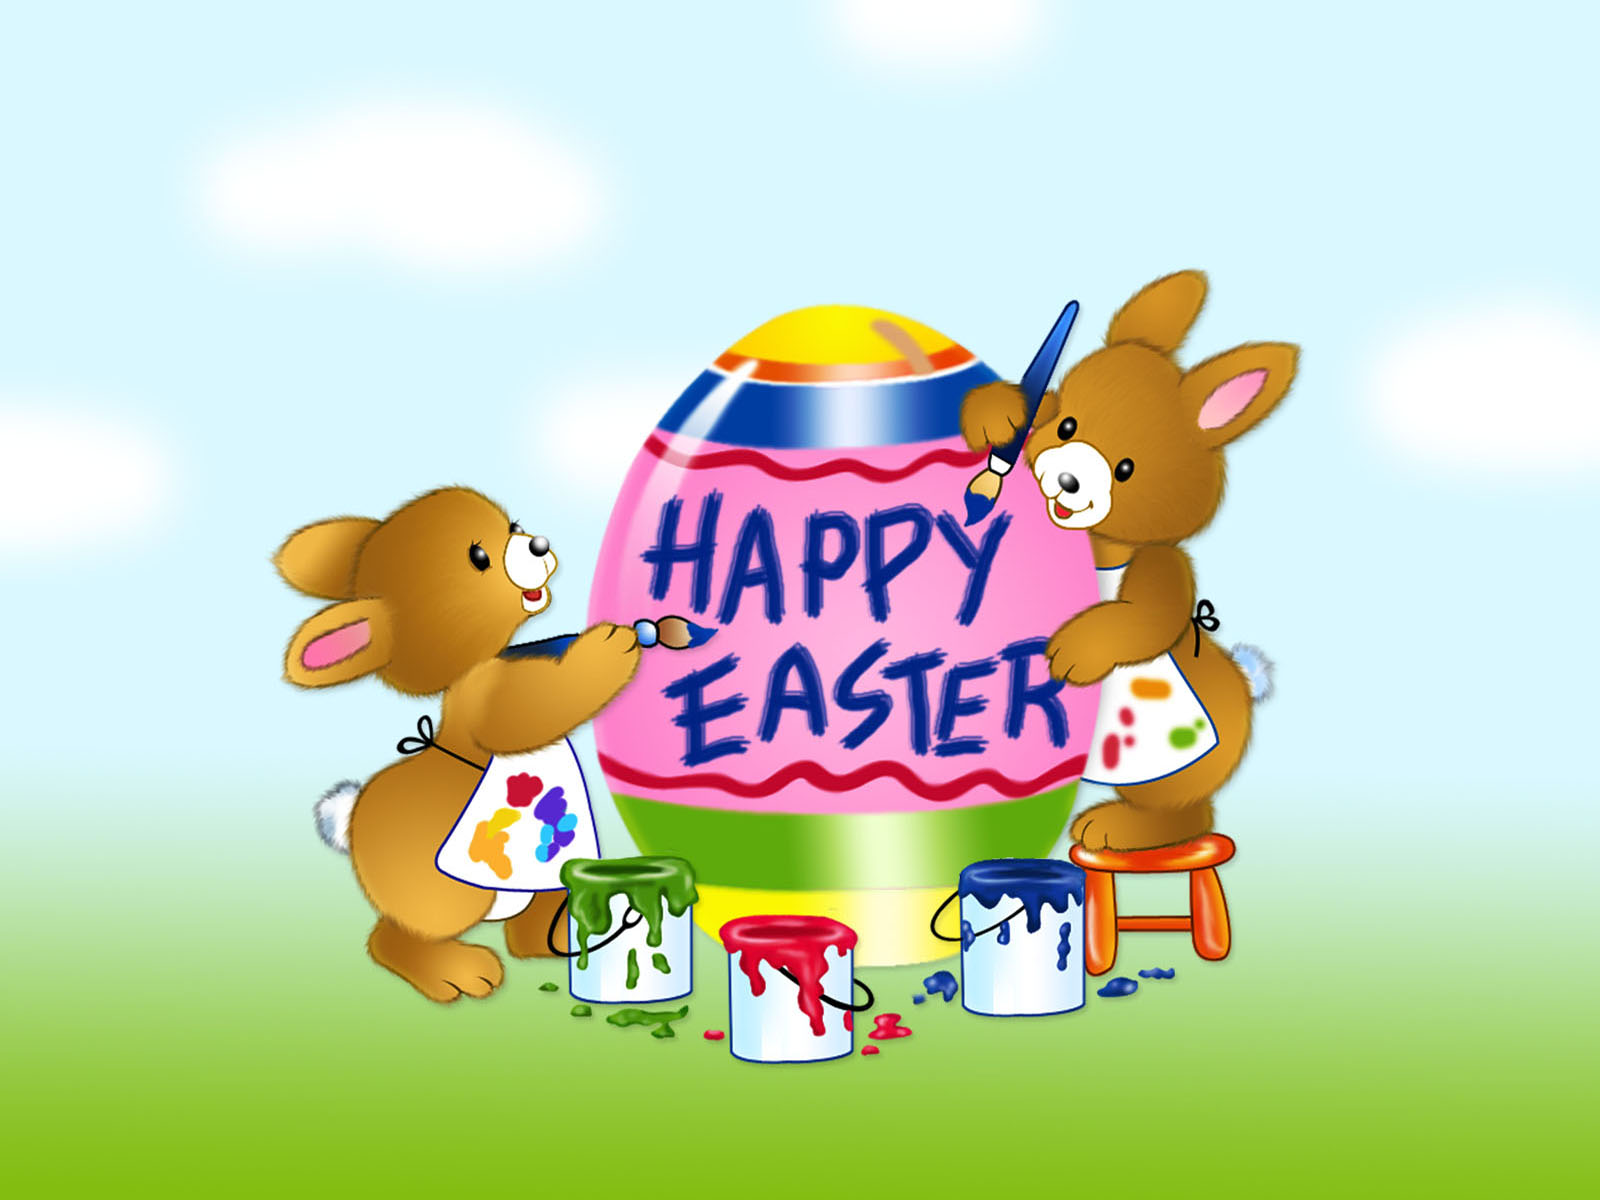 Happy Easter on Shutterfly Po Share